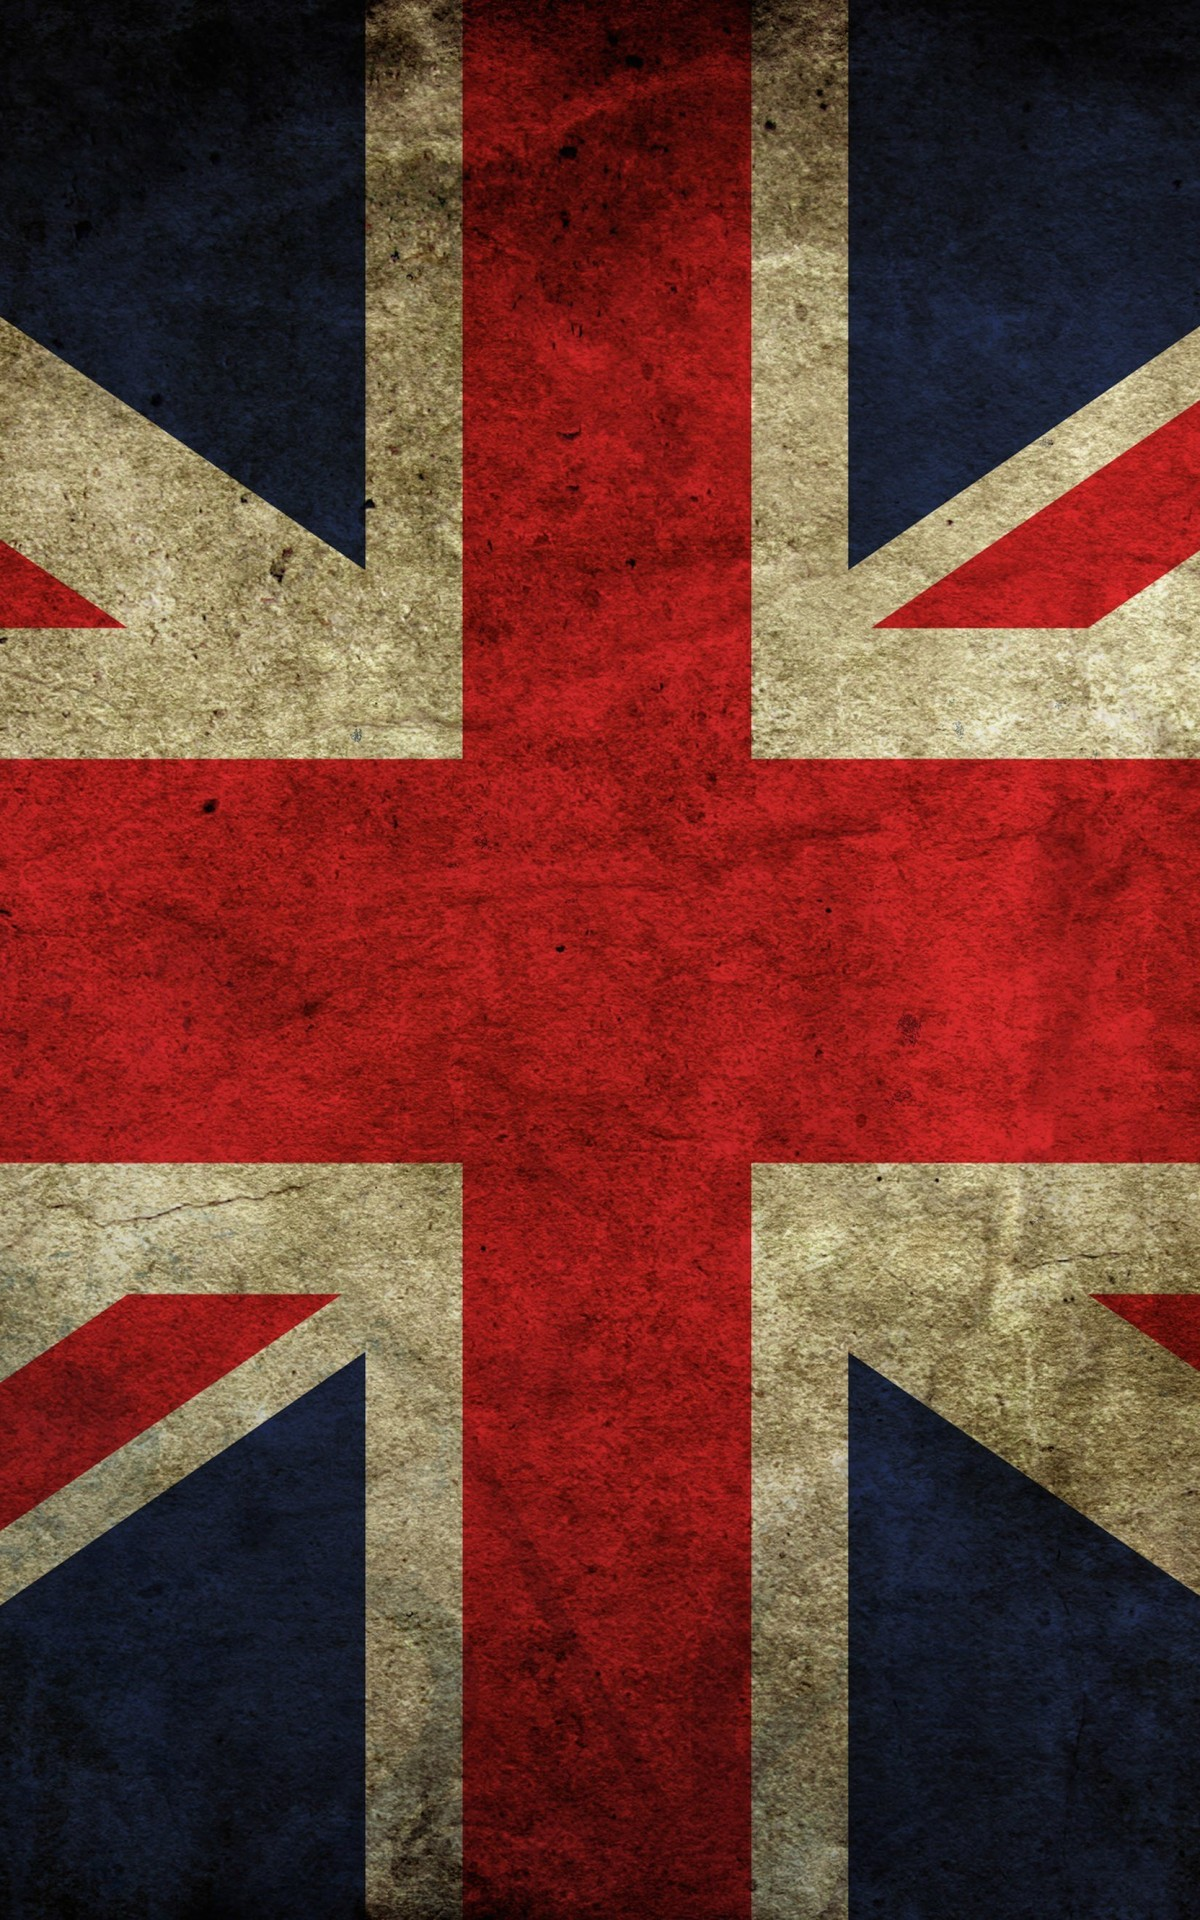 Grunge Flag Of The United Kingdom Wallpaper for Amazon Kindle Fire HDX